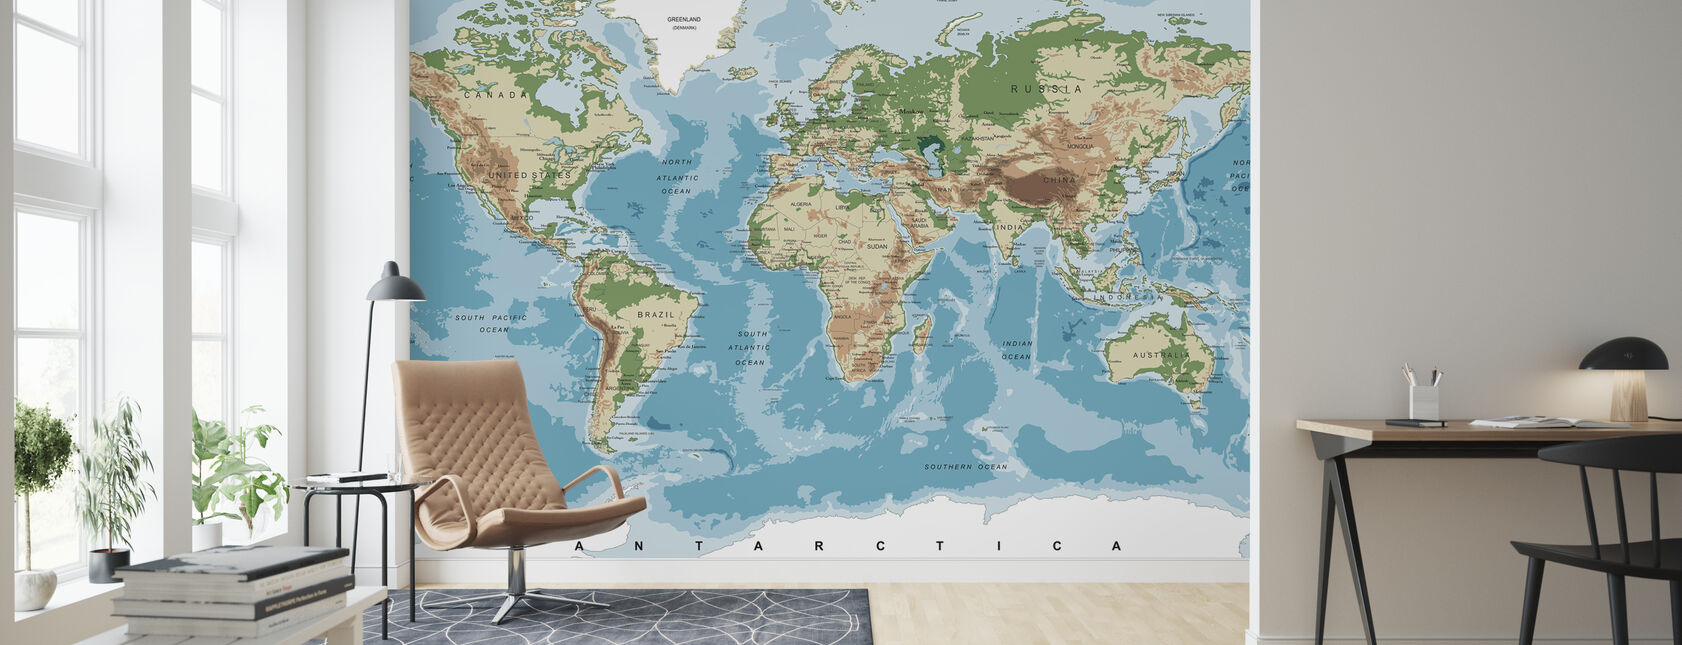 World Map with Elevation Tints - Wallpaper - Living Room